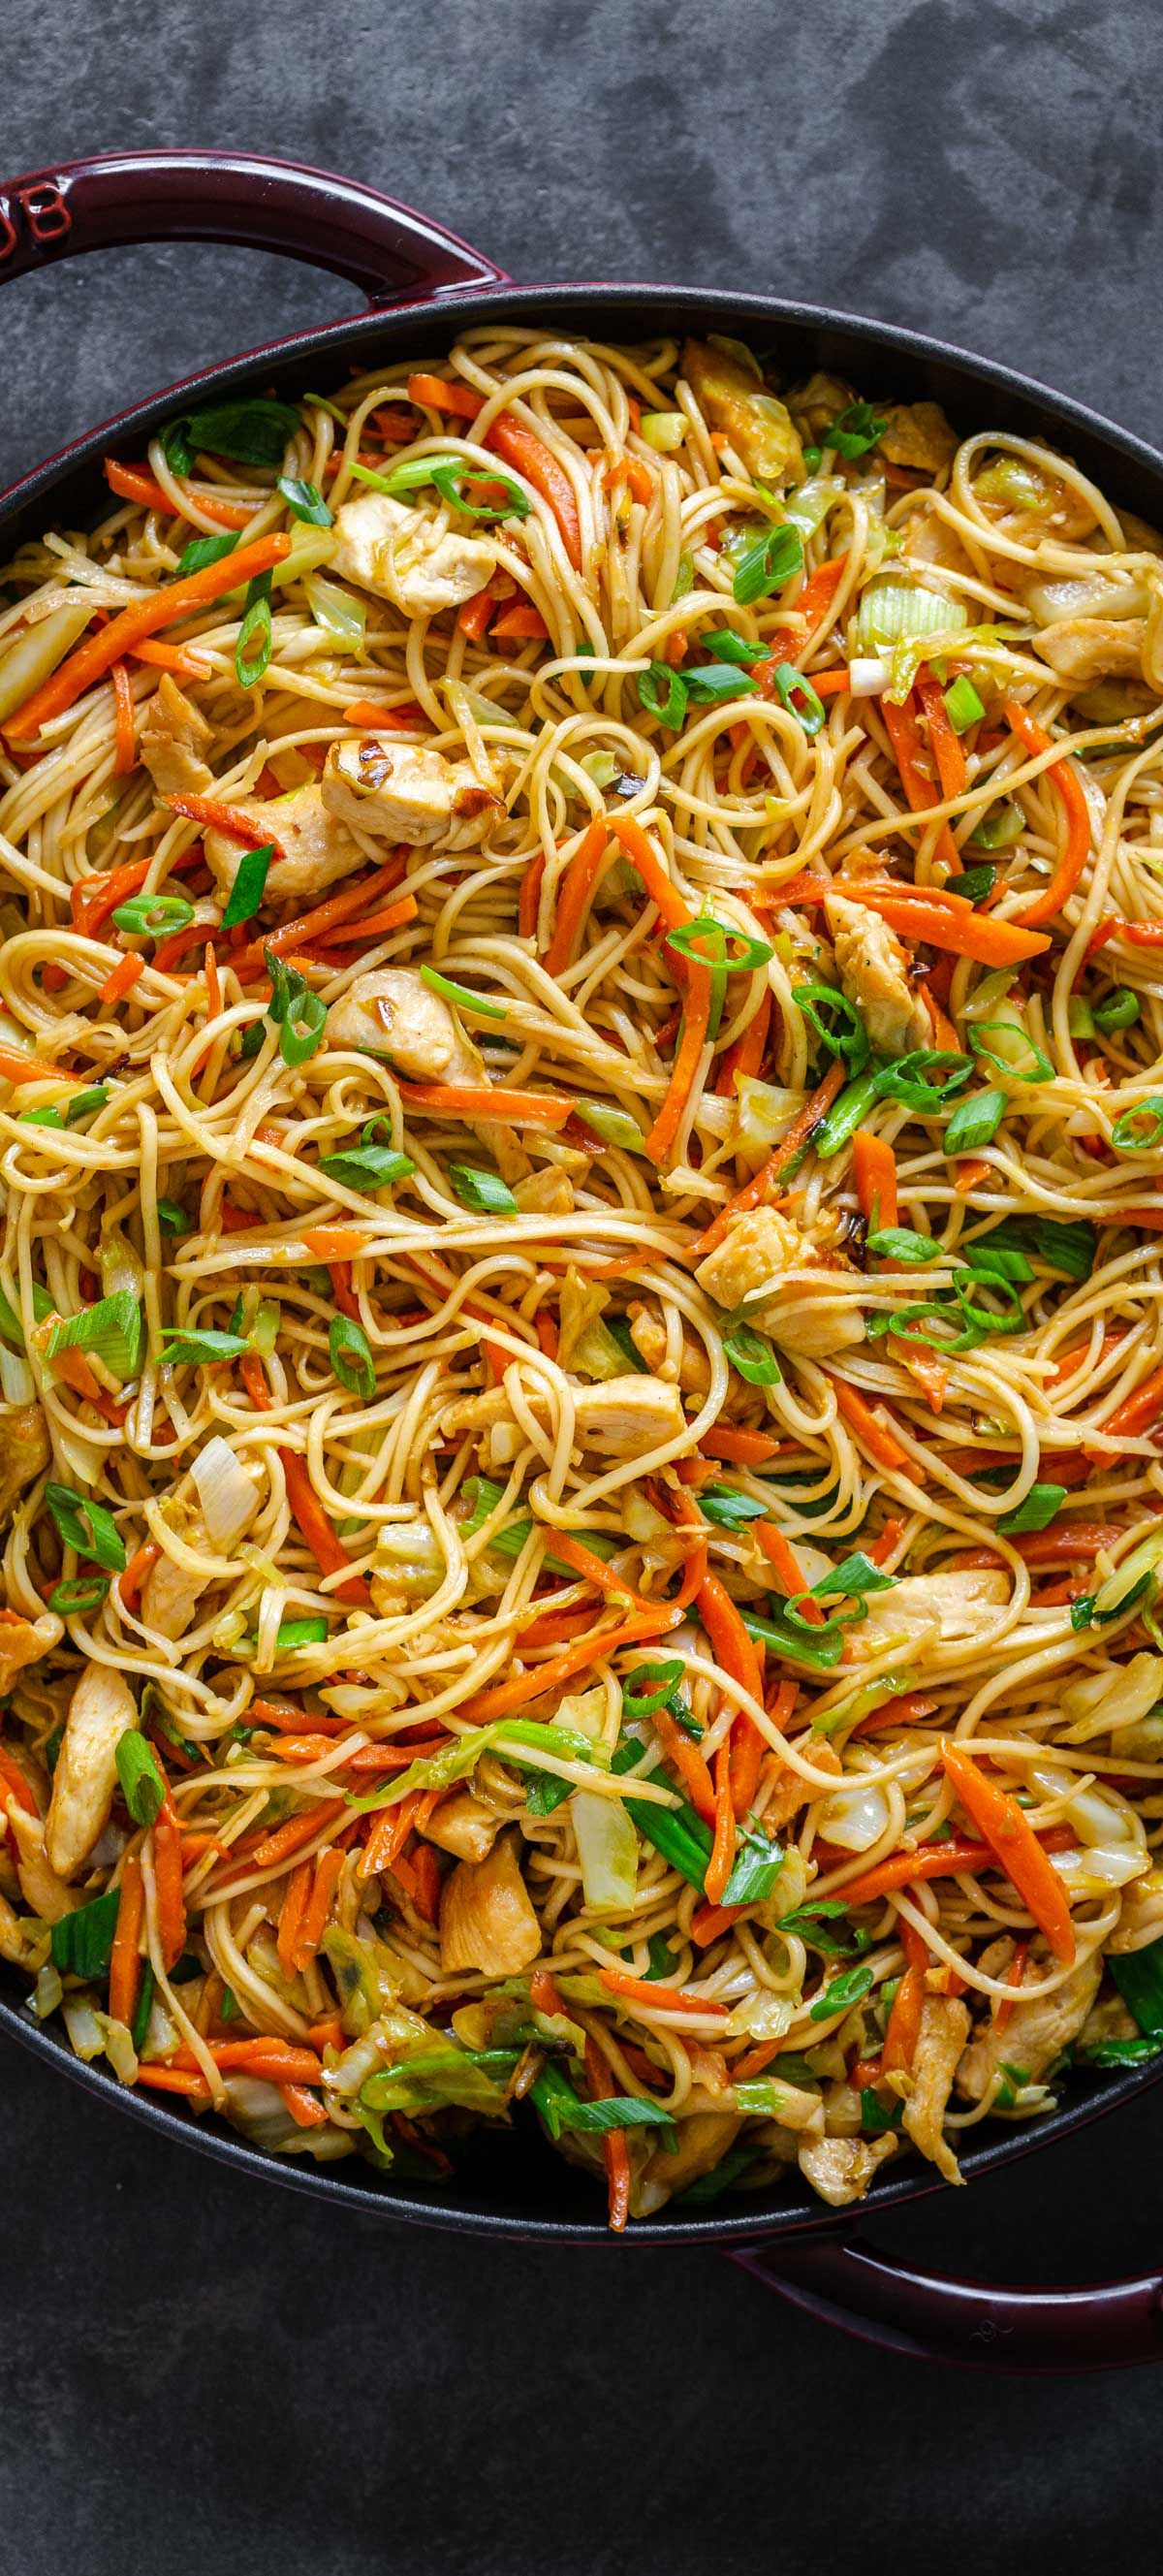 Chicken Chow Mein Is An Easy 30 Minute Dinner That Is Healthier